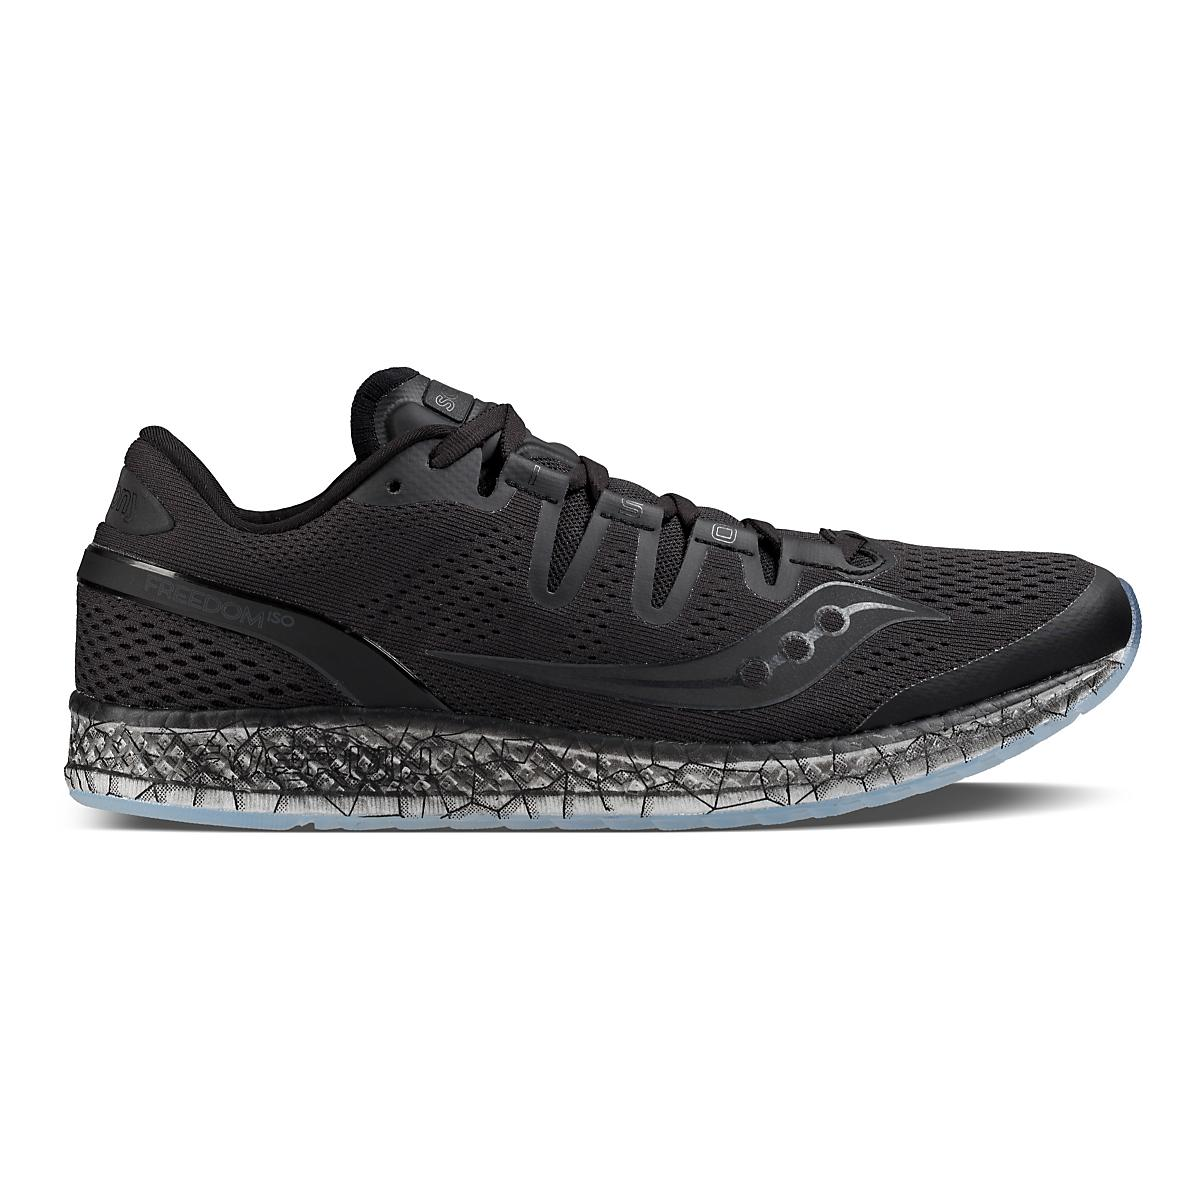 1ba4c624c4 Men's Saucony Freedom ISO Running Shoes from Road Runner Sports